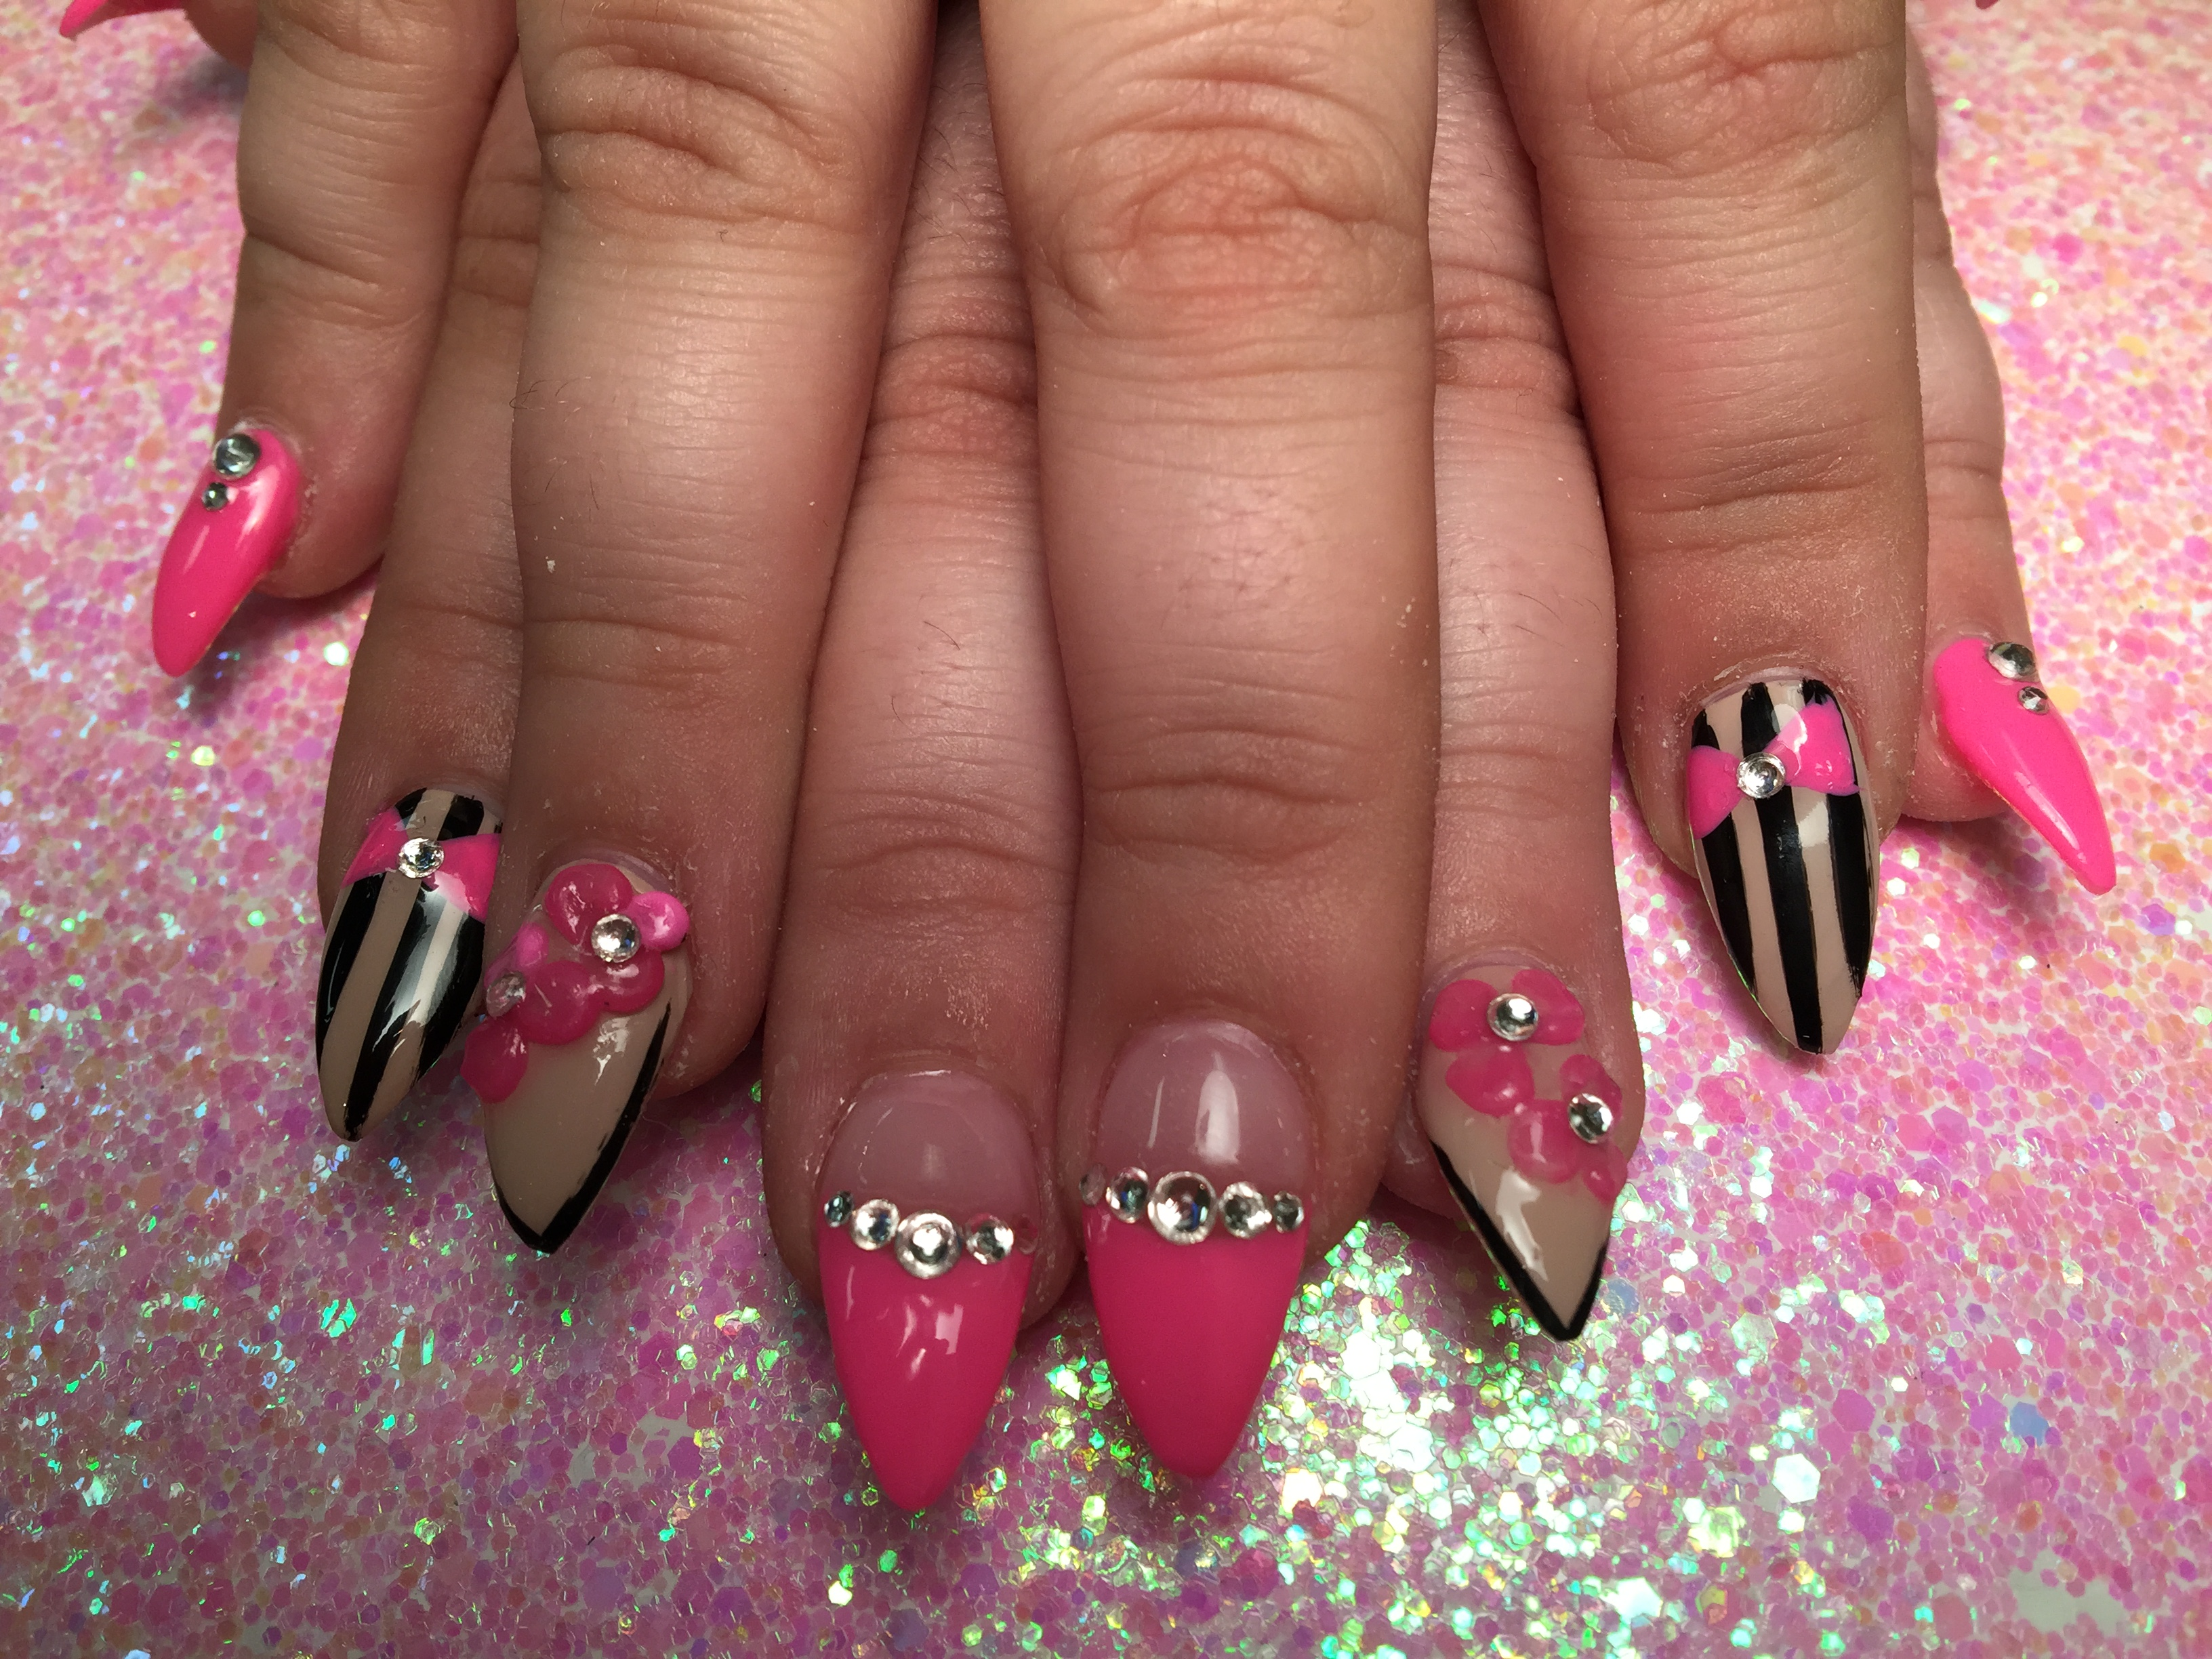 Stiletto Shoe Tips, nail art design by Top Nails, Clarksville TN.